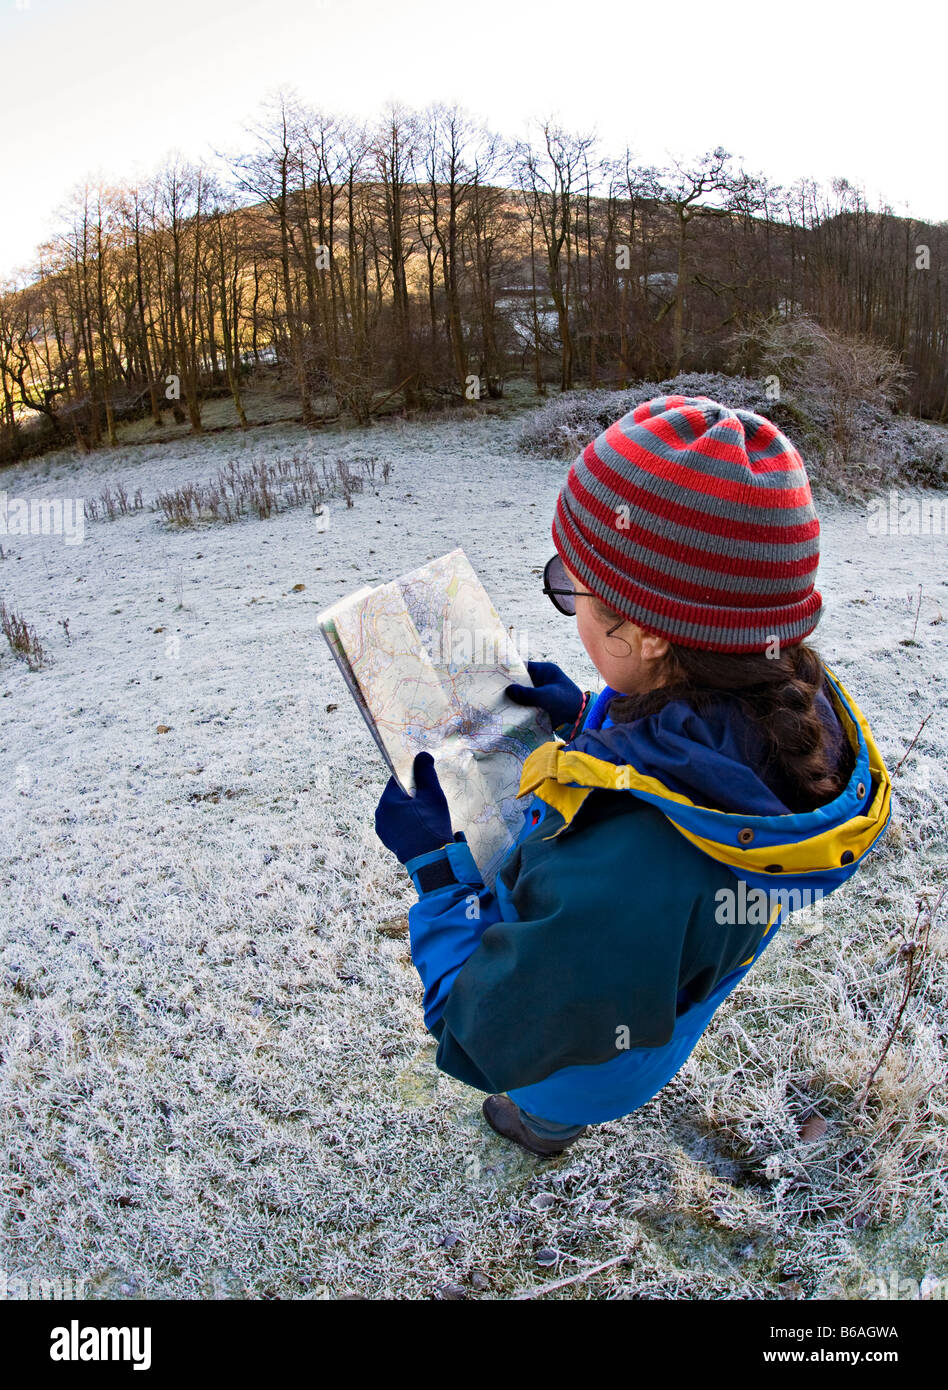 Woman reading map in winter condtions with frost on ground Cwm Llanwenarth Wales UK - Stock Image